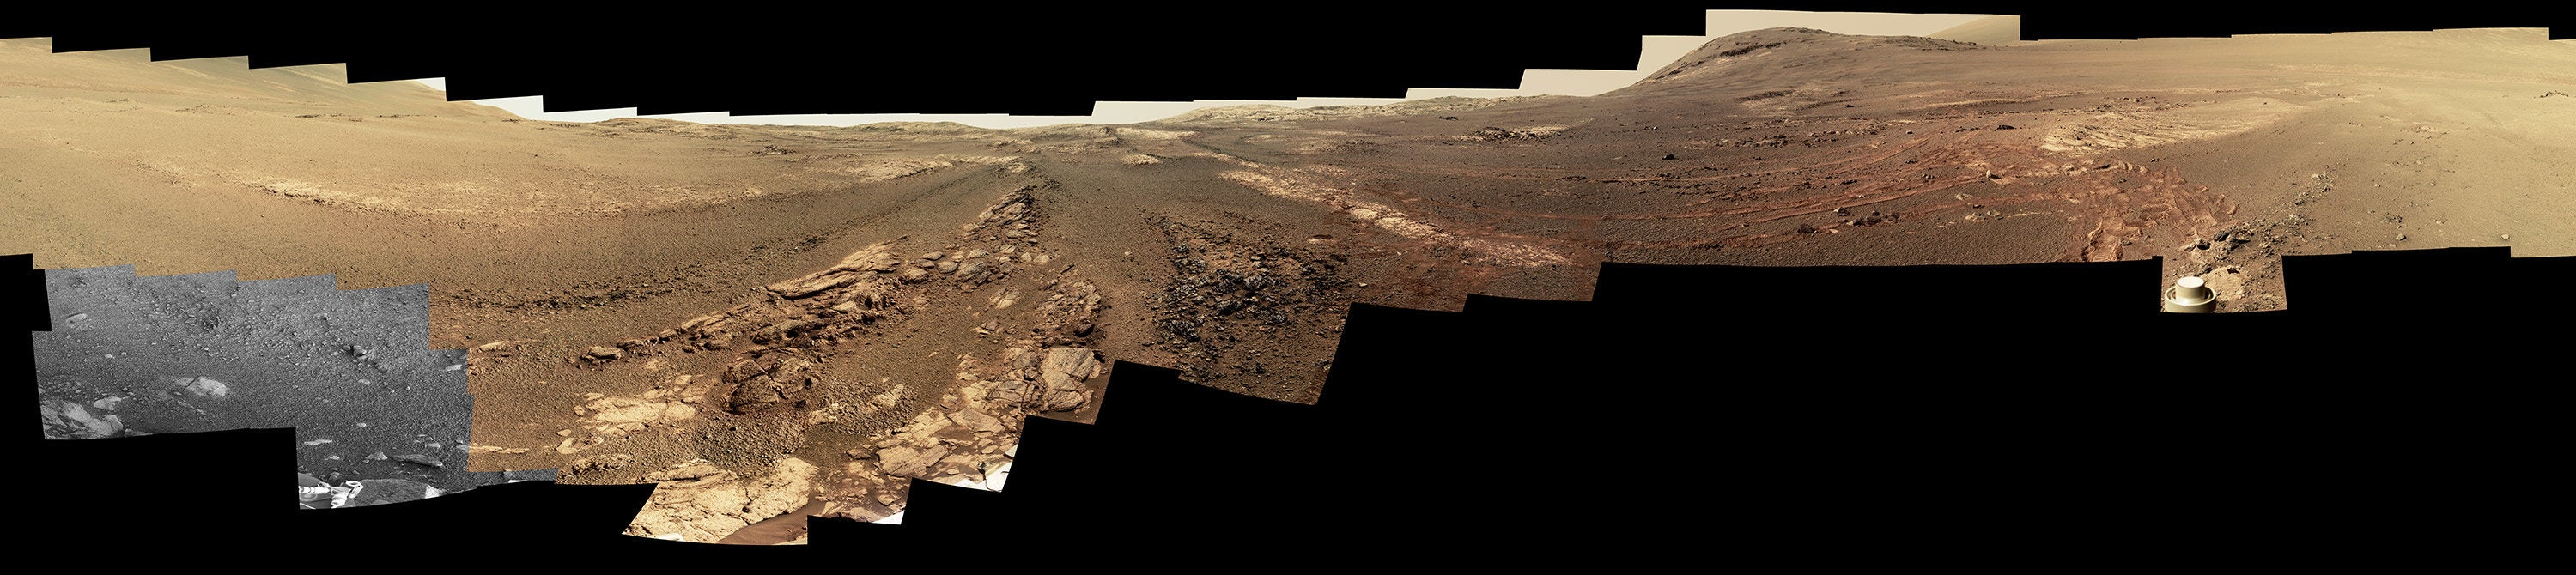 The Mars close-ups of Opportunity's last panorama are crazy